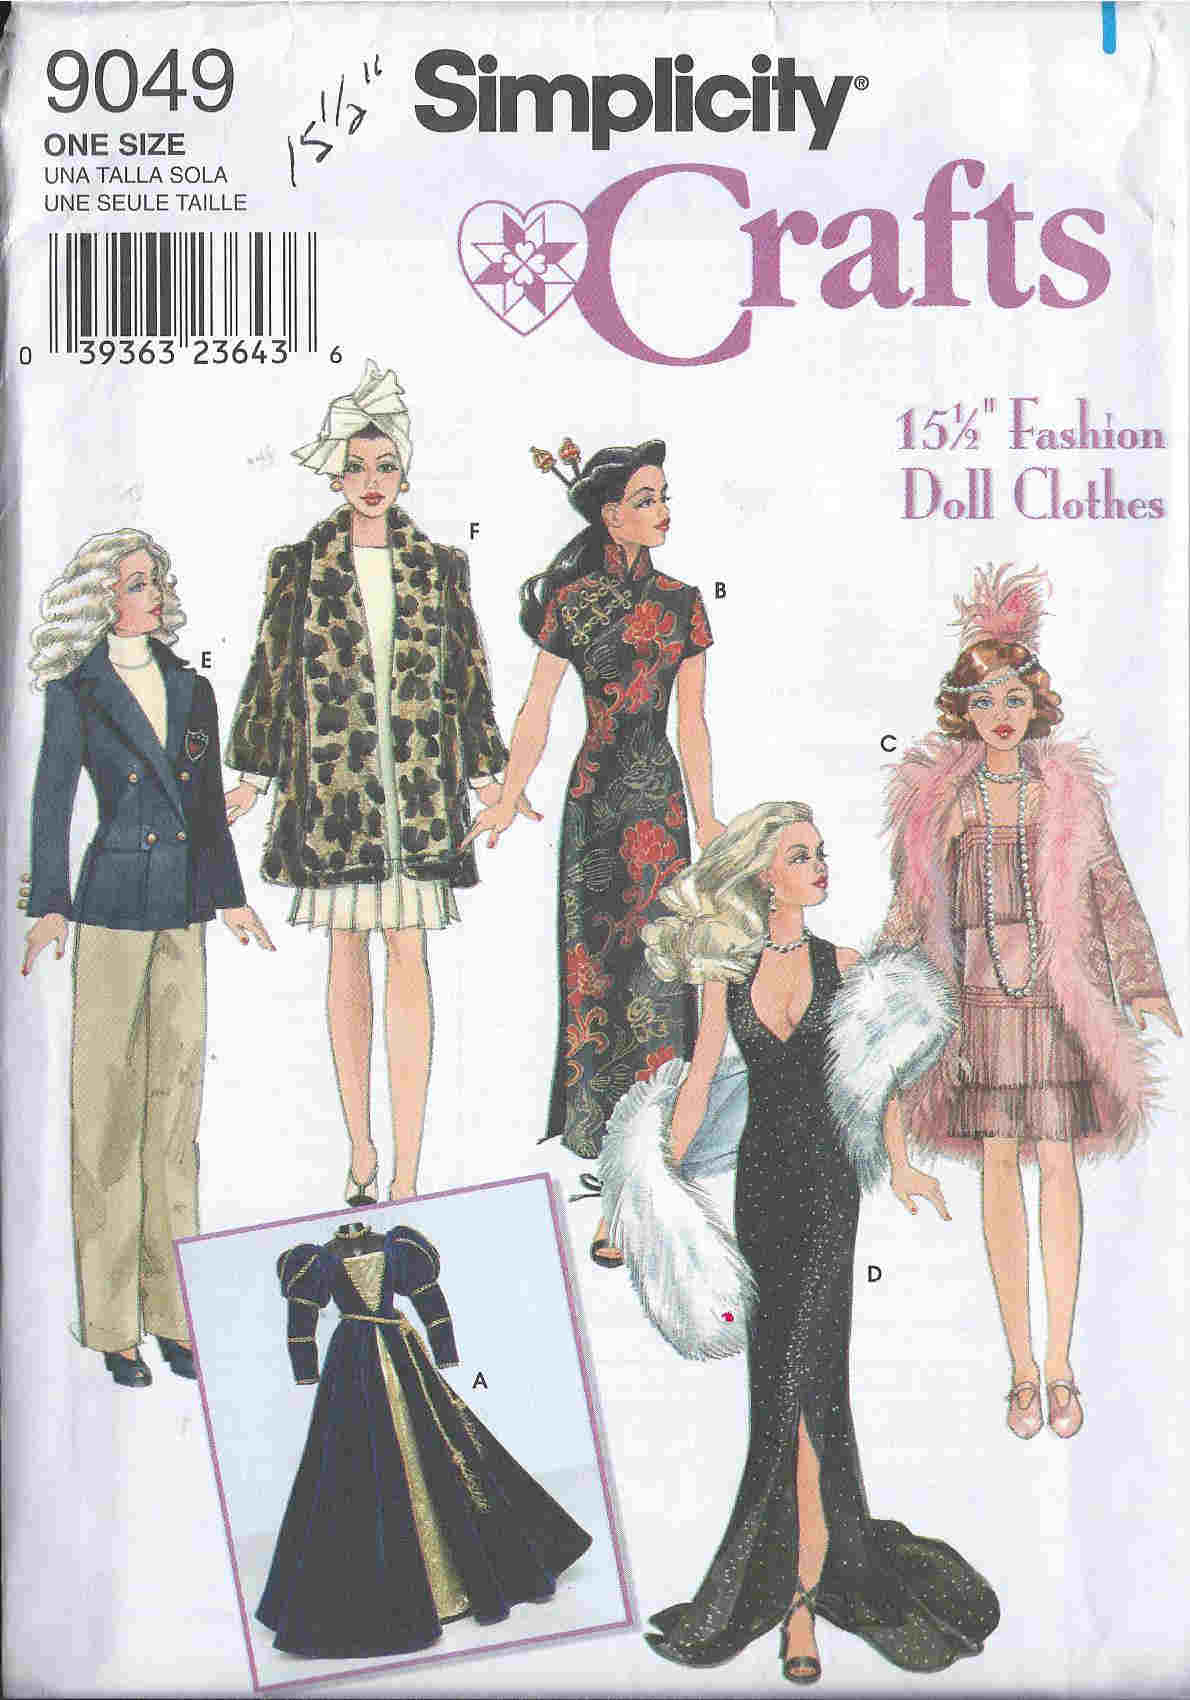 Free Sewing Patterns for Fashion Doll Clothes - The Spruce Crafts 97